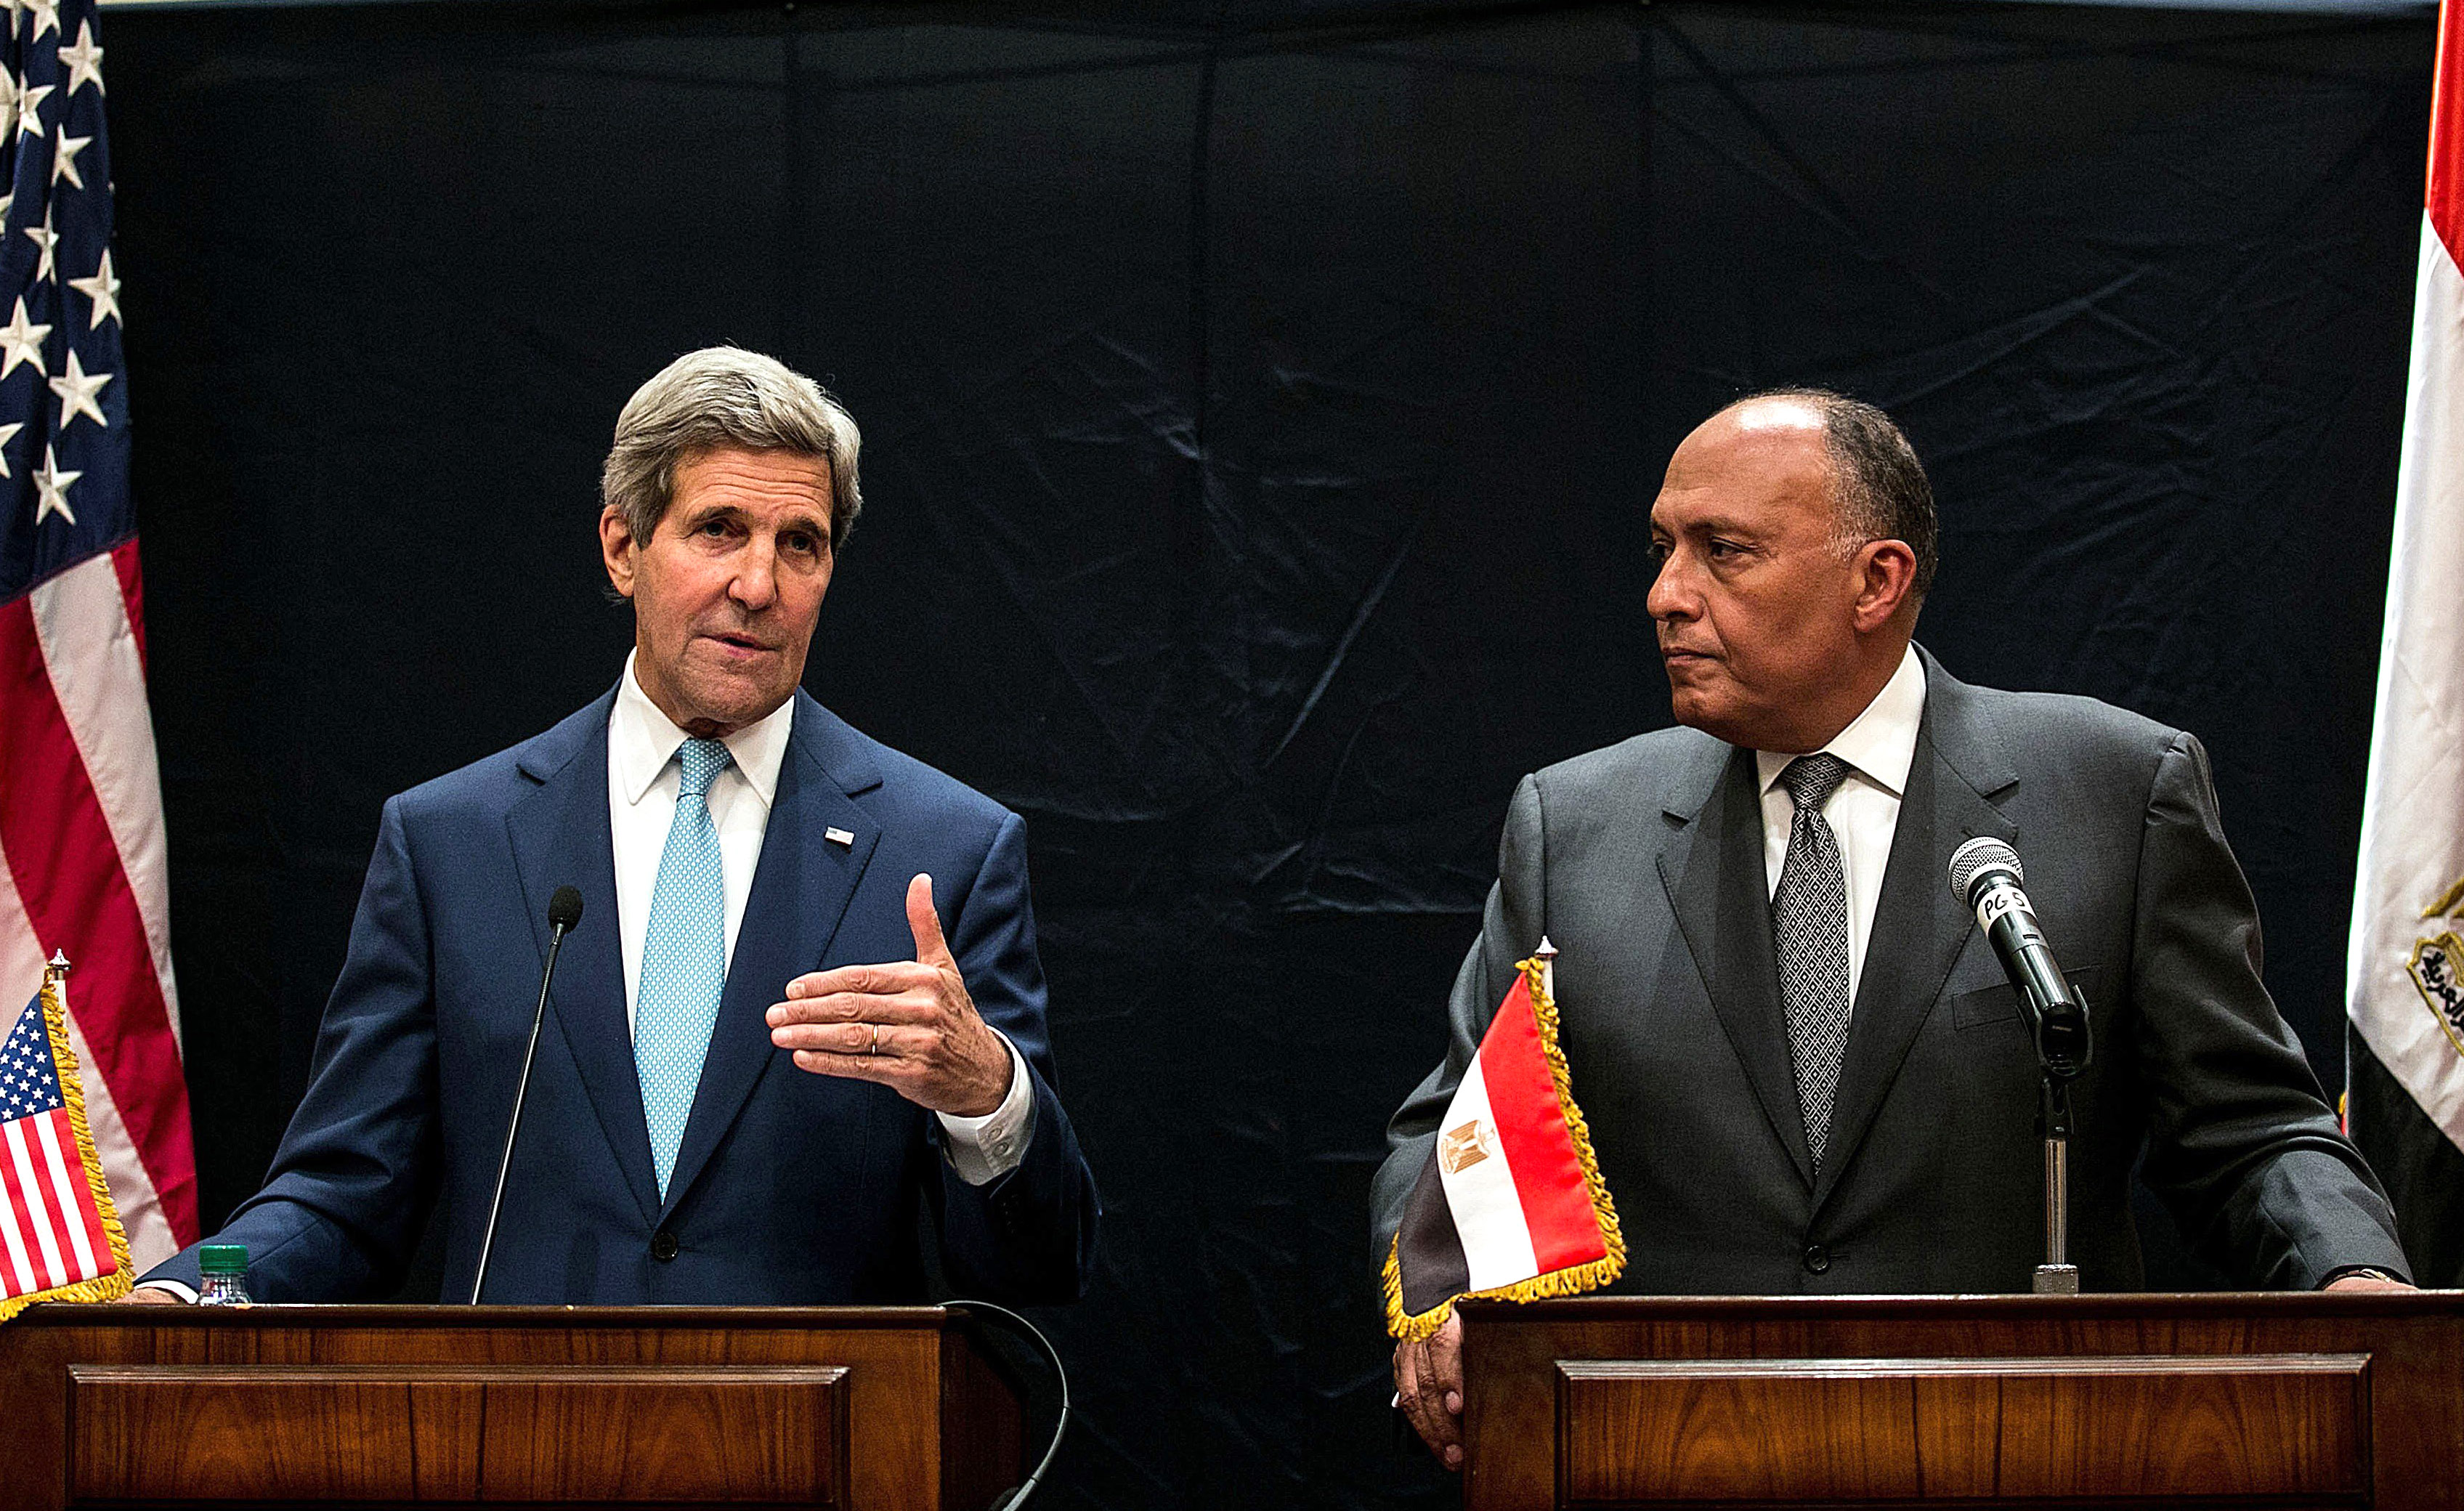 US Secretary of State John Kerry (L) and Egypt's Foreign Minister Sameh Hassan Shoukry hold a joint press conference regarding developments in Syria and Iraq on June 22, 2014 in Cairo.